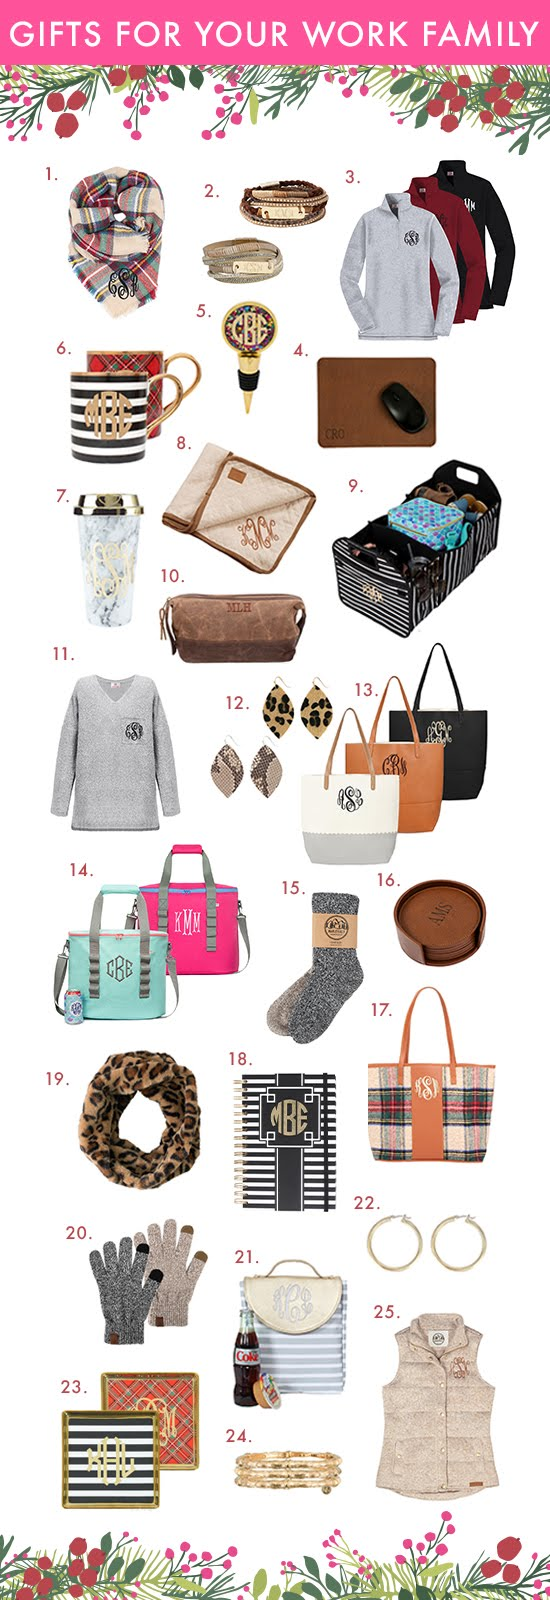 monogram gifts for the workplace